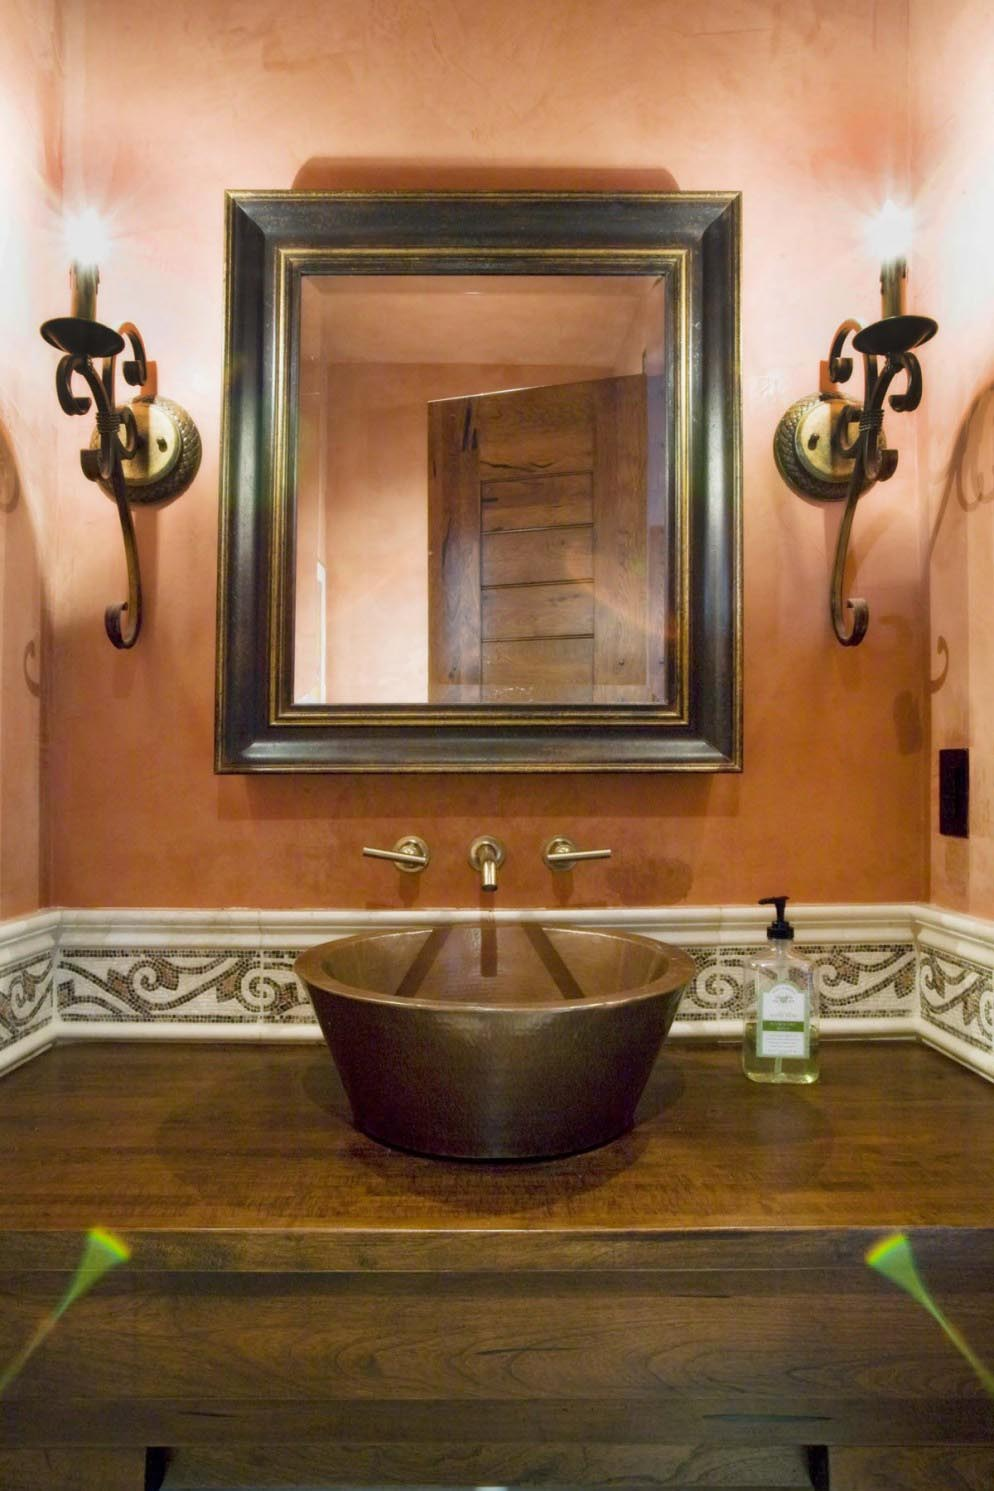 How to Create Rustic Bathroom Mirrors Design?